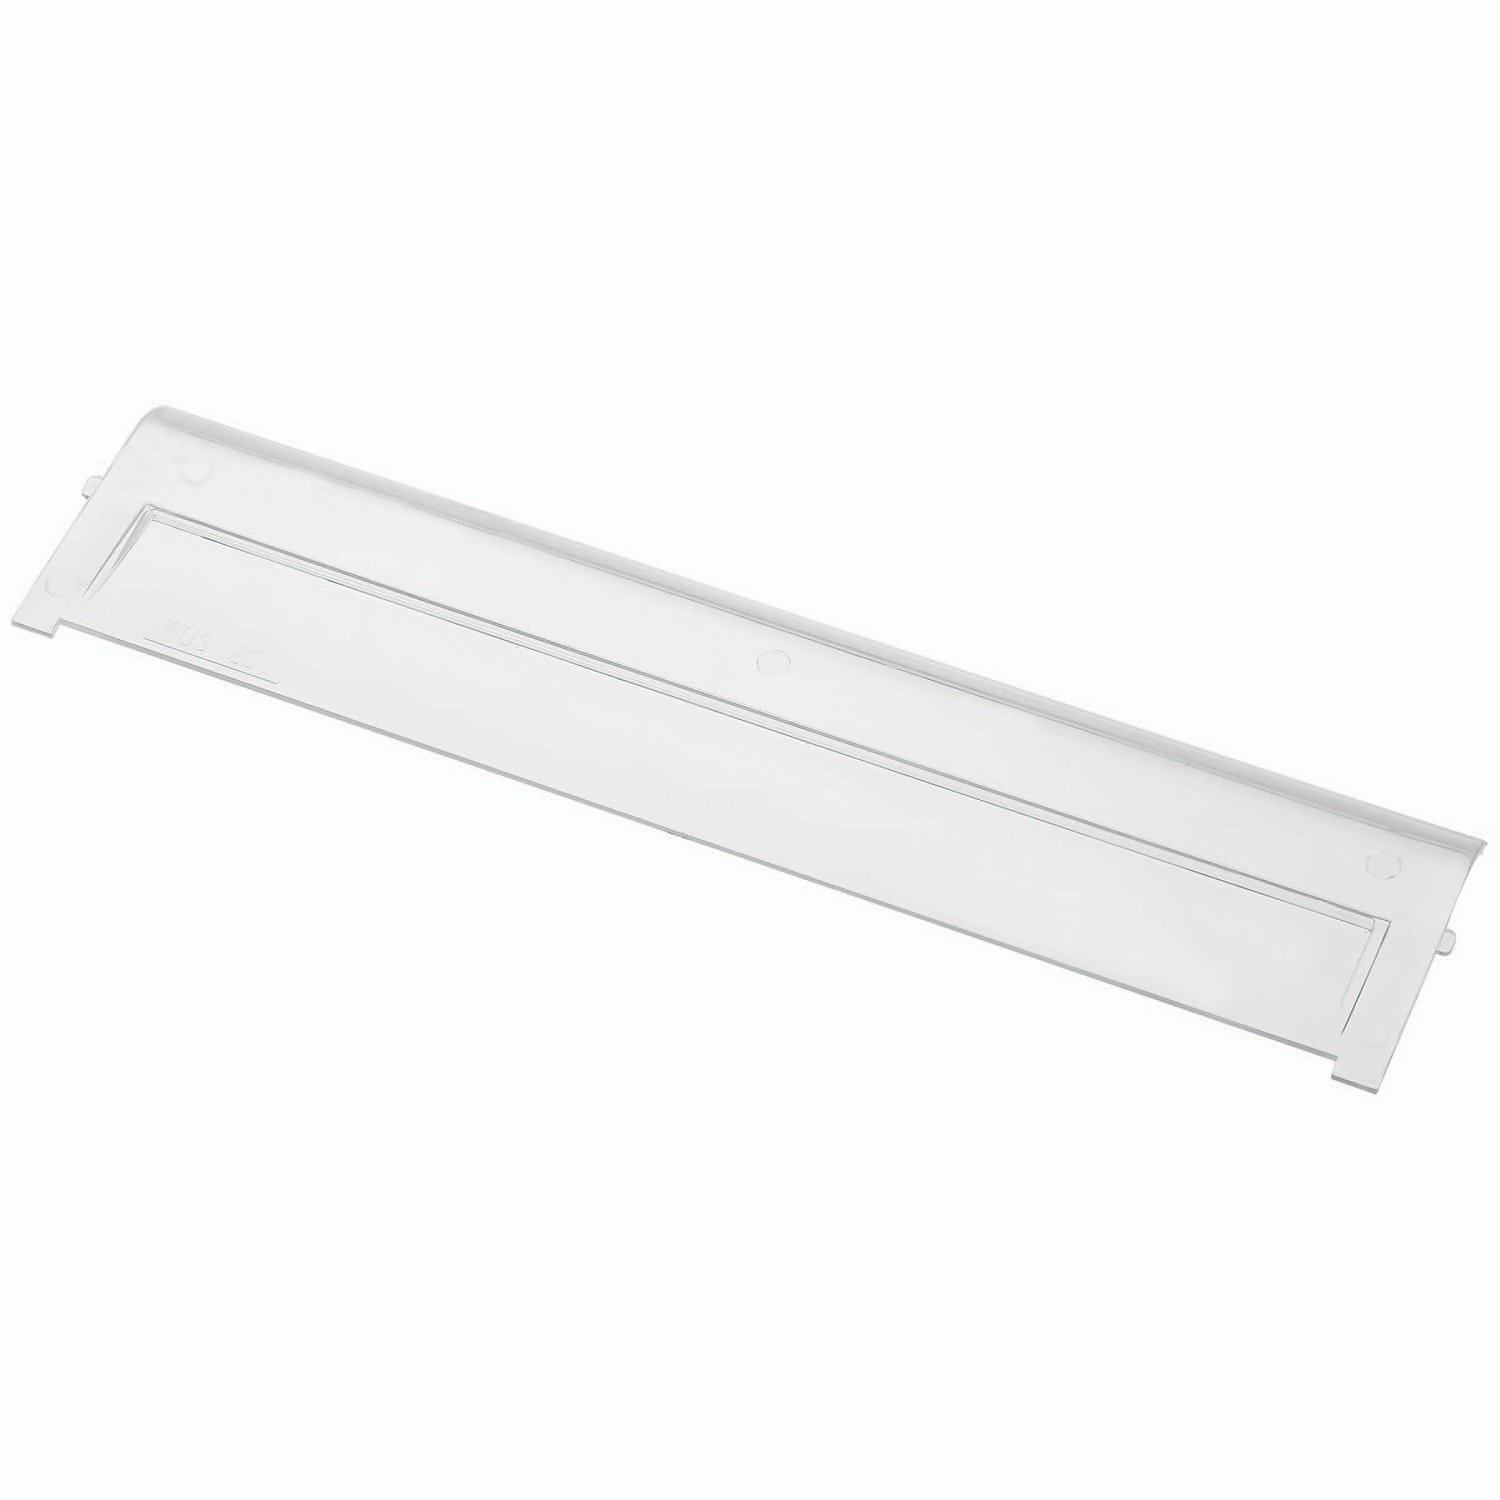 Window For Quantum Ultra Clearview Poly Bins - 10-3/4''Wx3-3/4''H